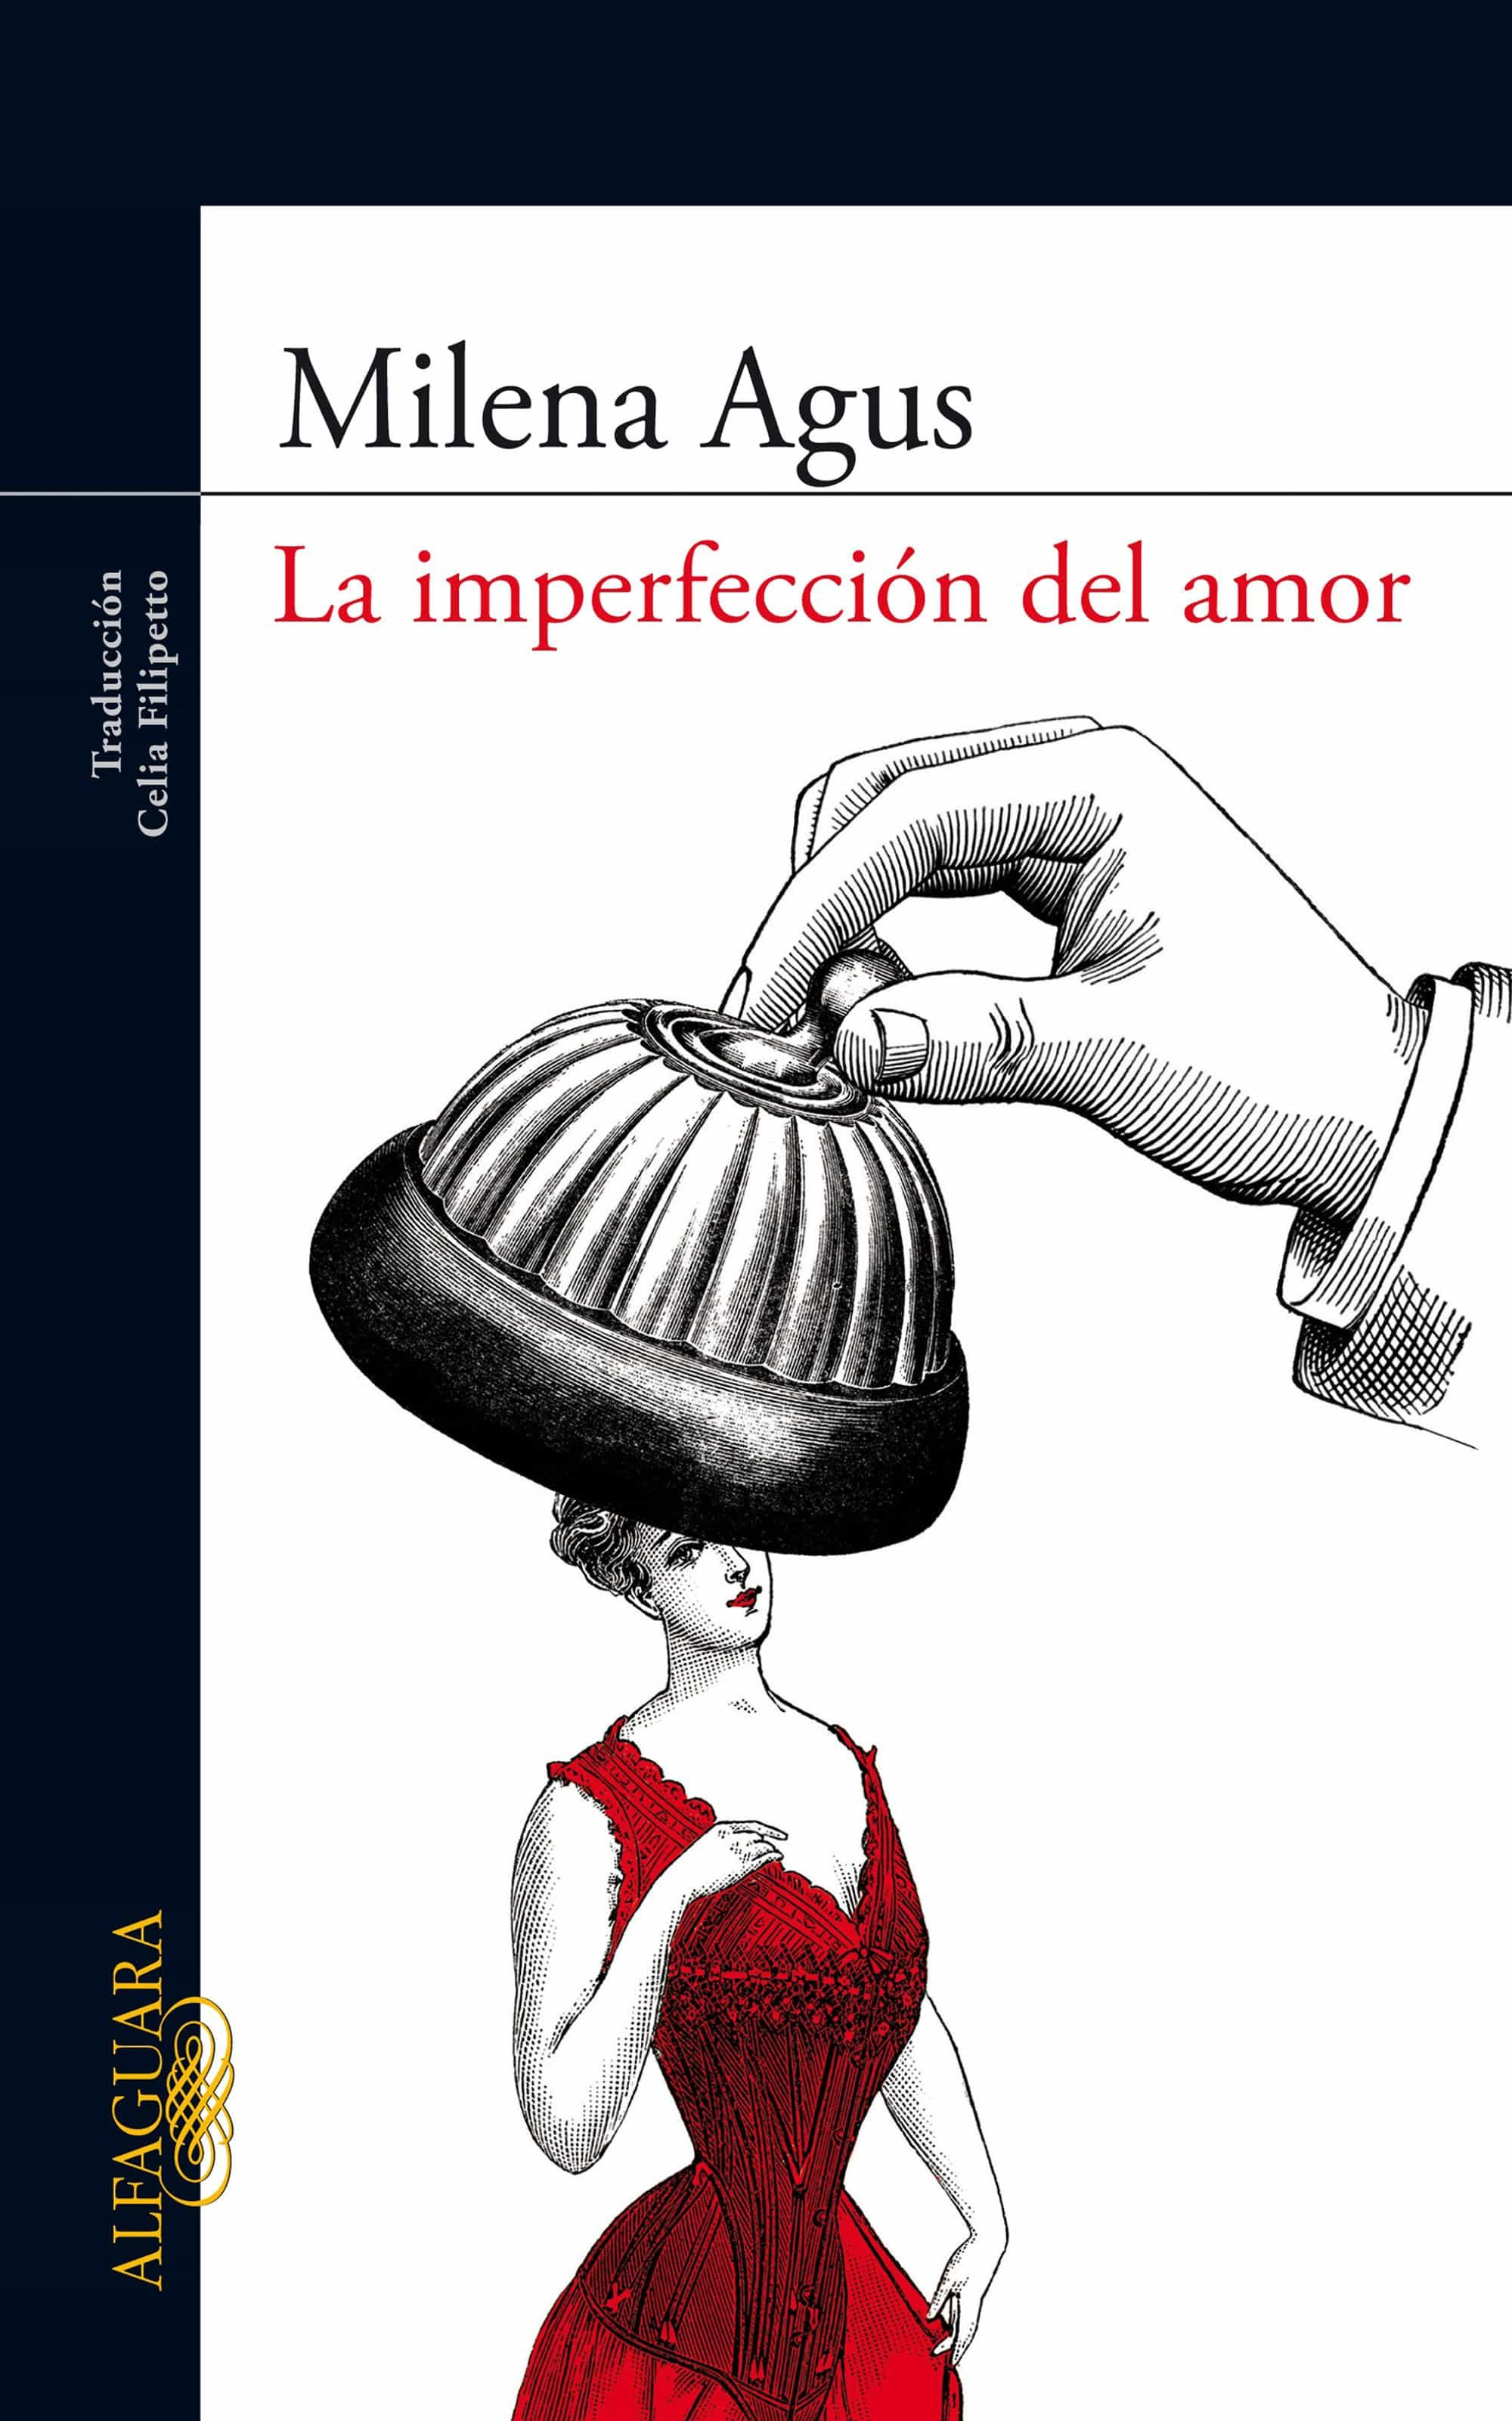 La Imperfeccion Del Amor Ebook Ebooks El Corte Ingles